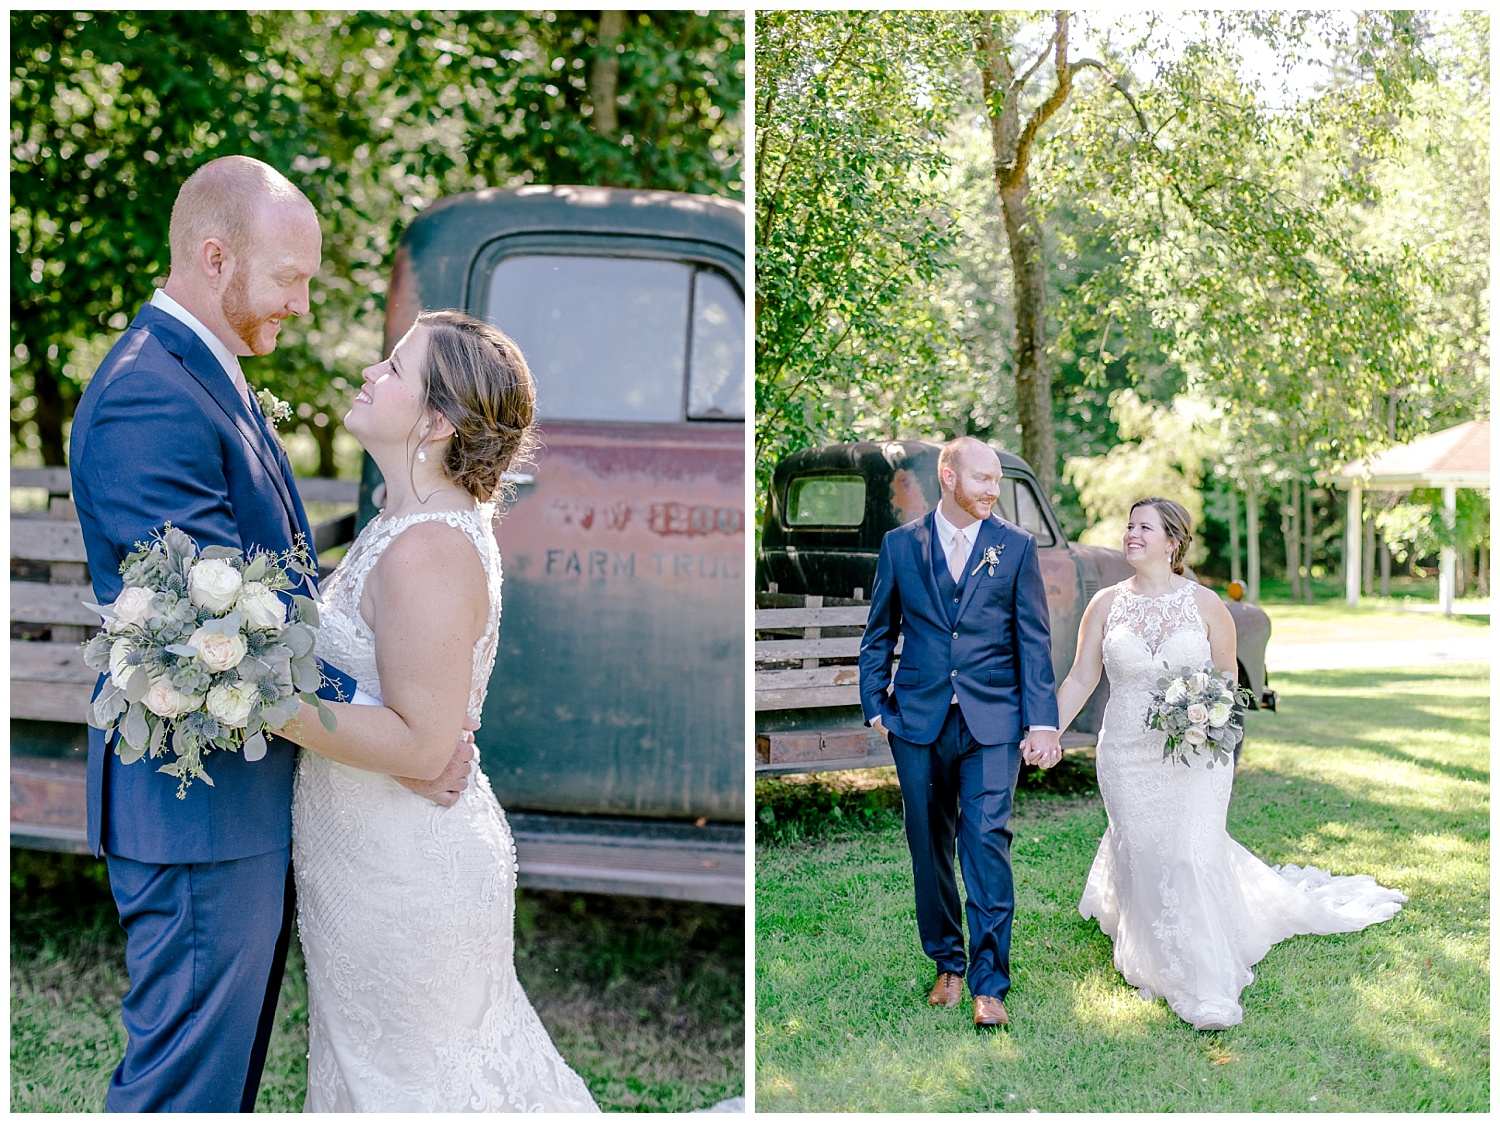 Navy and Blush pink inspired summertime whitewoods wedding in Northeastern Pennsylvania NEPA wapwallopen wedding venue by  PA based wedding and lifestyle photographer Lytle photography_0038.jpg